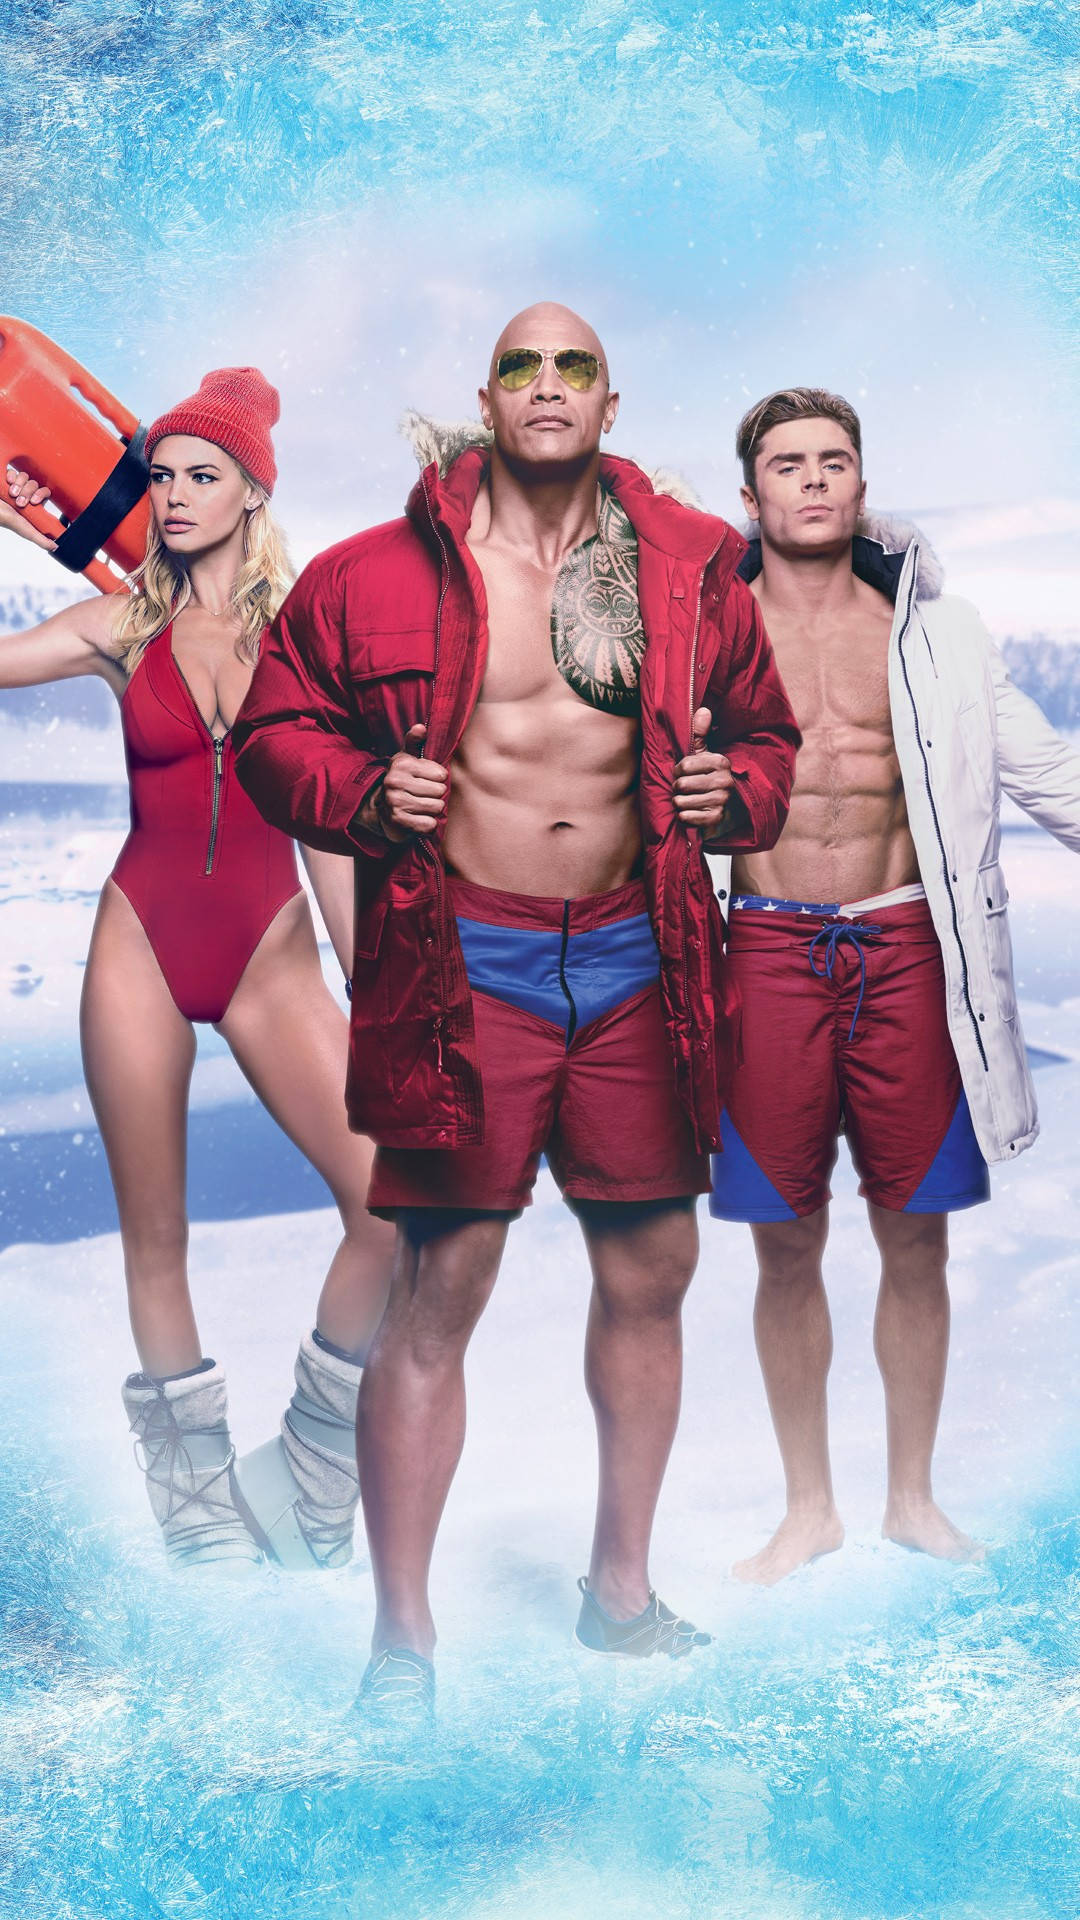 Full Hd Wallpapers  High Resolution Iphone 6s Baywatch 2017 4k Wallpapers Hd Wallpapers Id 19931